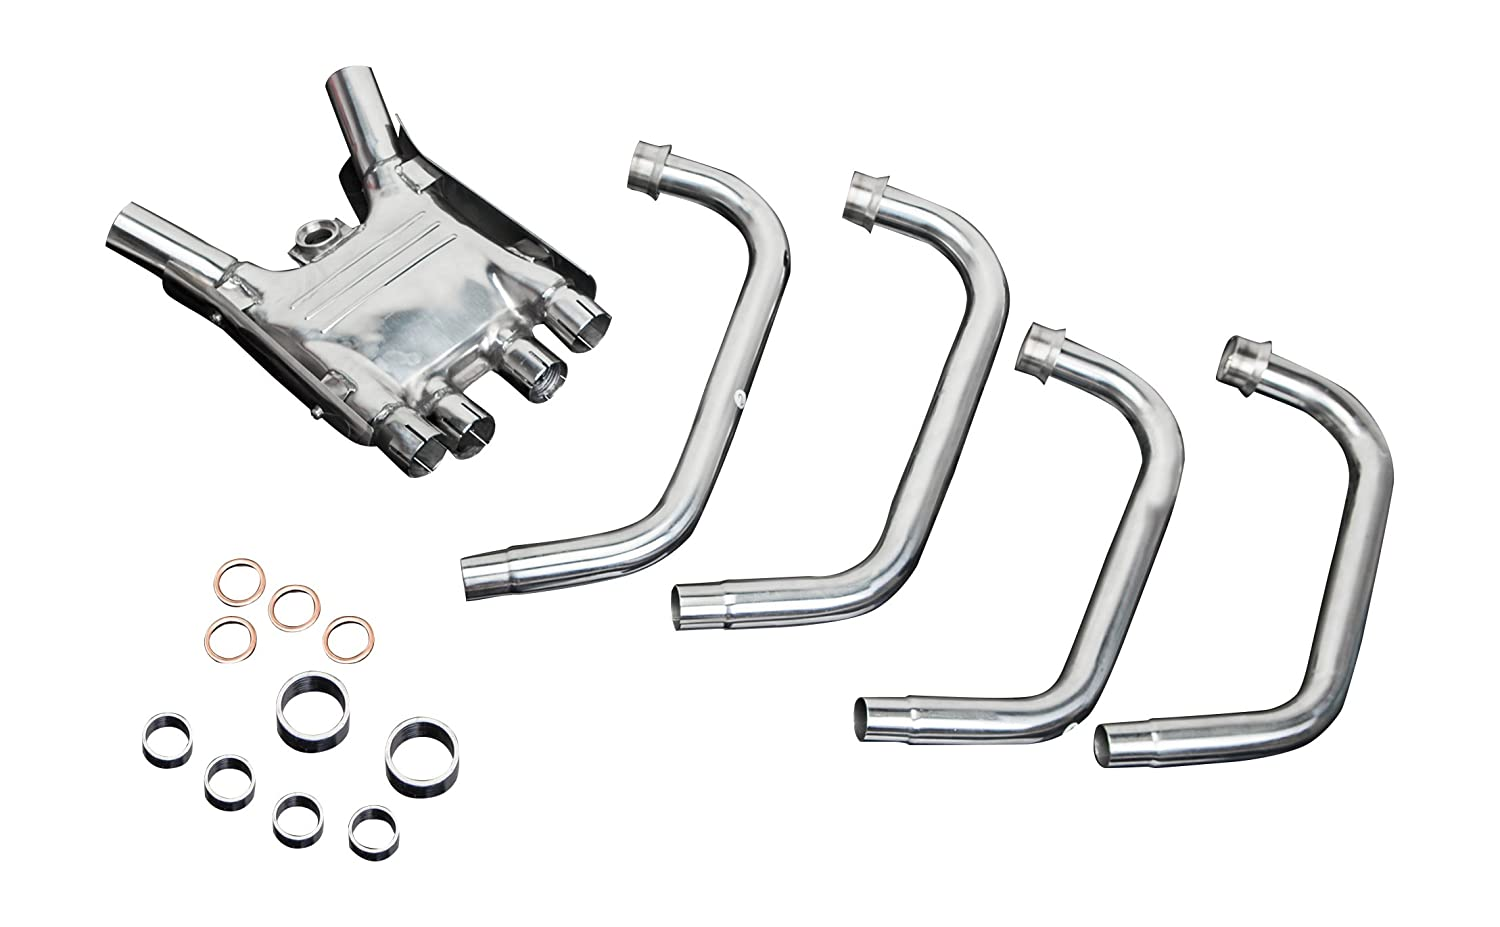 Delkevic Aftermarket Stainless Steel 4-2 Headers and Collector Box compatible with Yamaha XJR1300 1998-2006